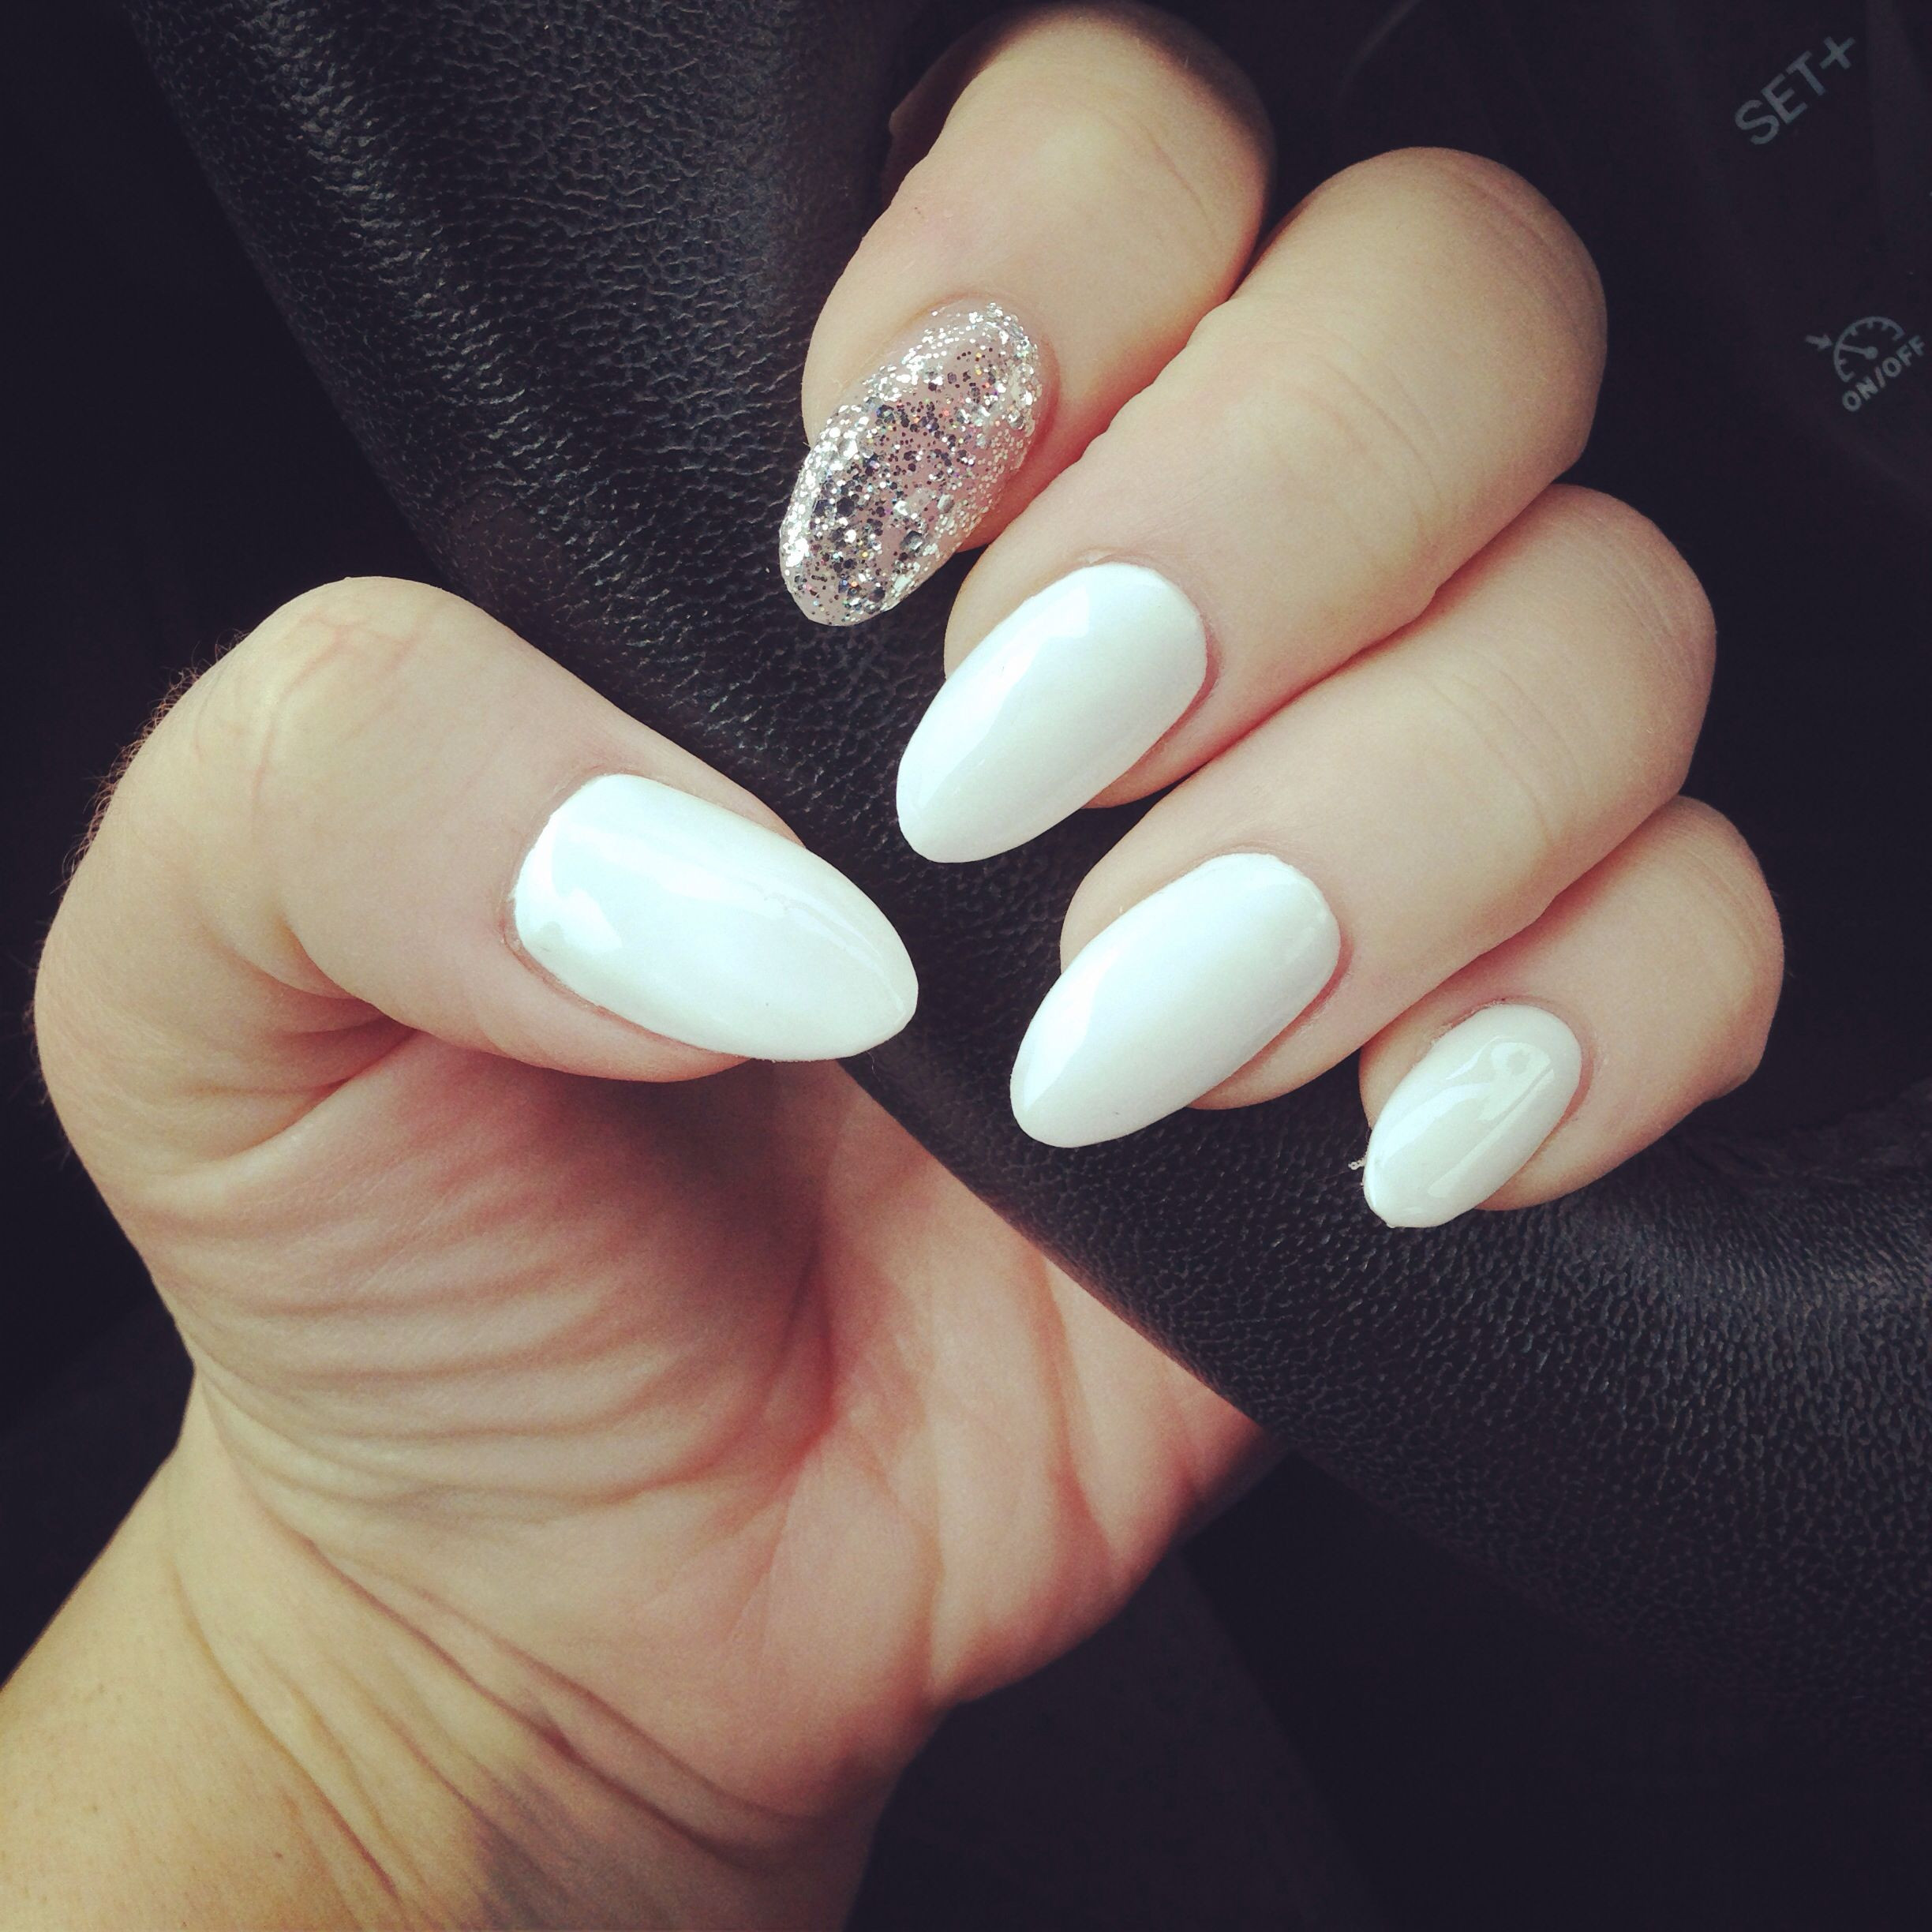 Almond Glitter Nails  White almond nails with silver glitter accent